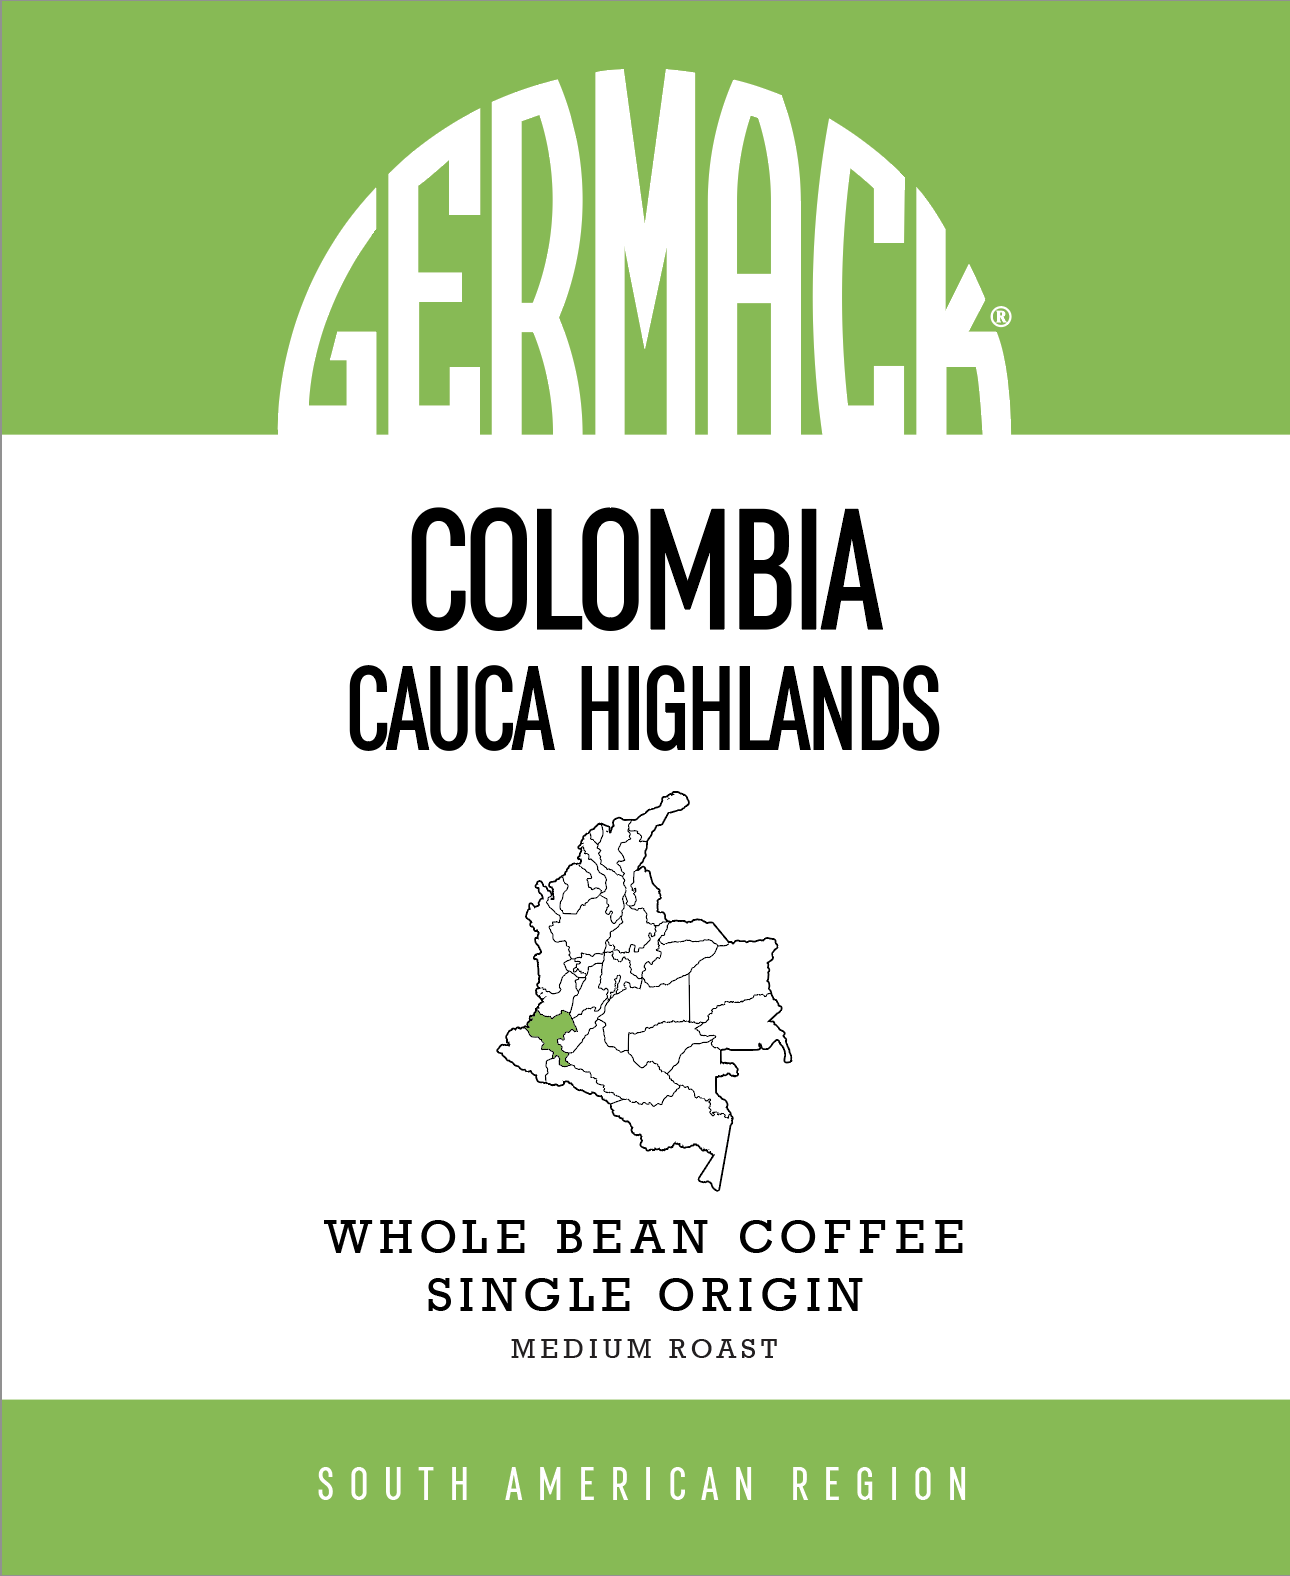 Picture Germack Coffee (5 LB.) - Colombia Cauca Highlands